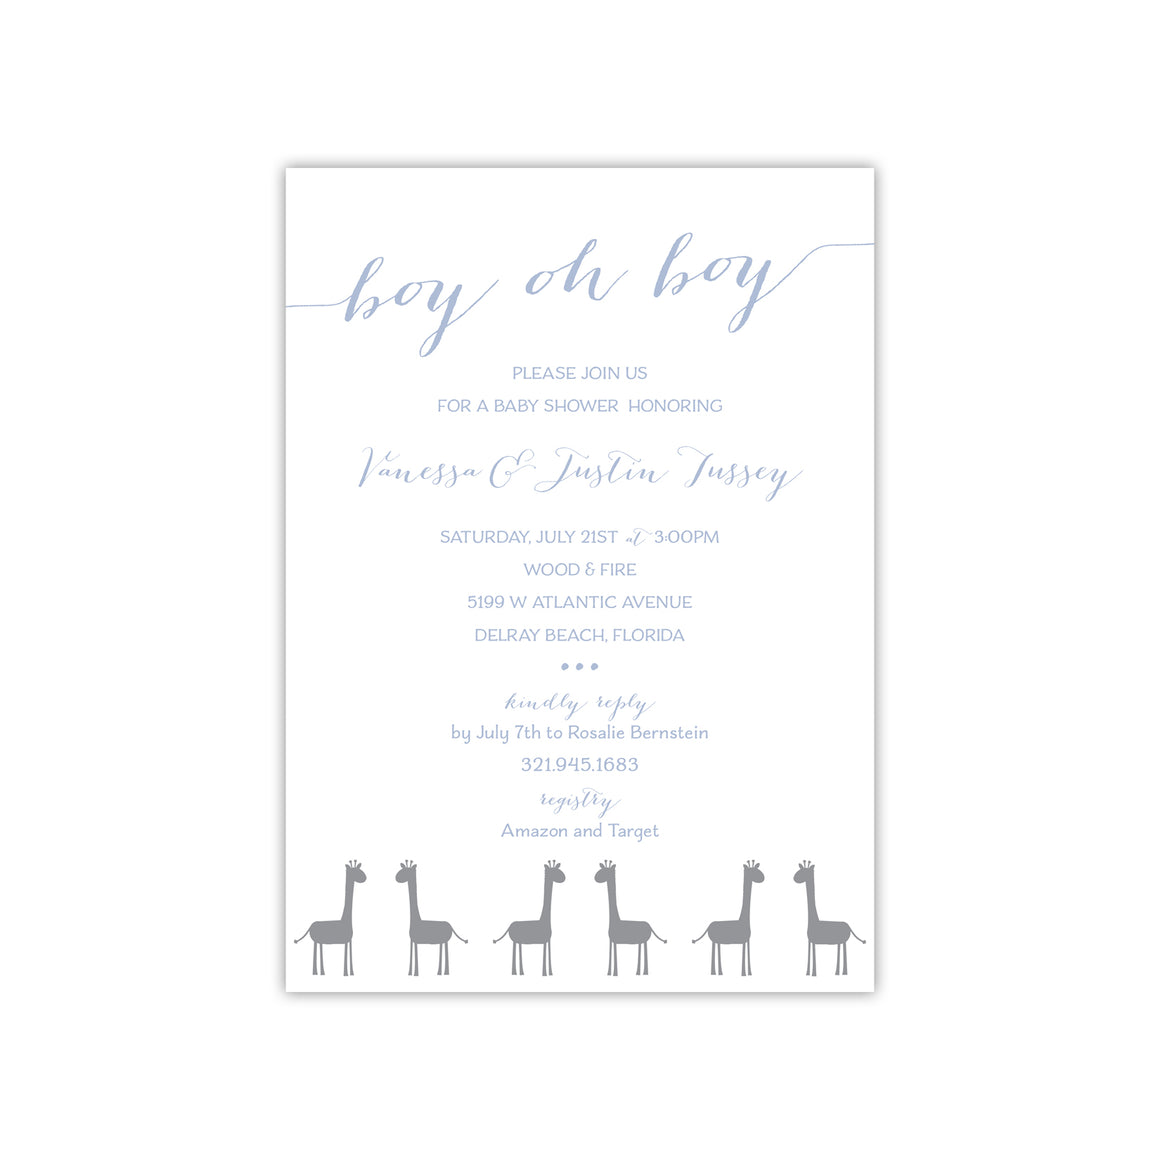 Boy oh Boy Blue Giraffe Baby Shower Invitation